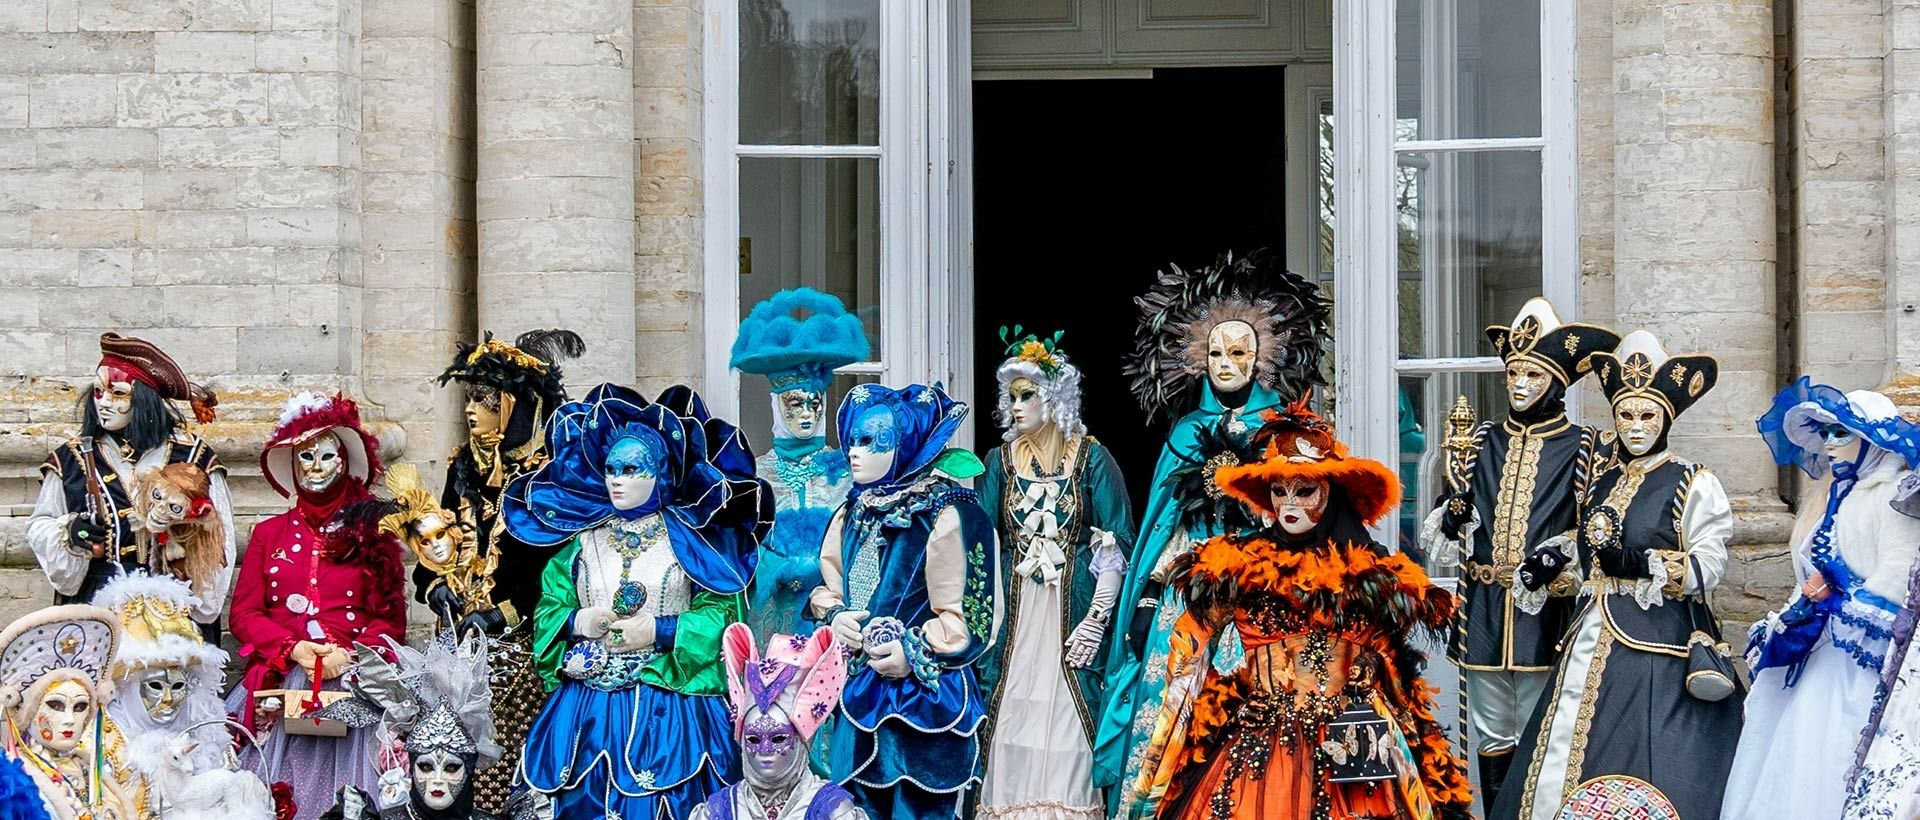 Camping Venetian Parade and carnival masks in Rochefort